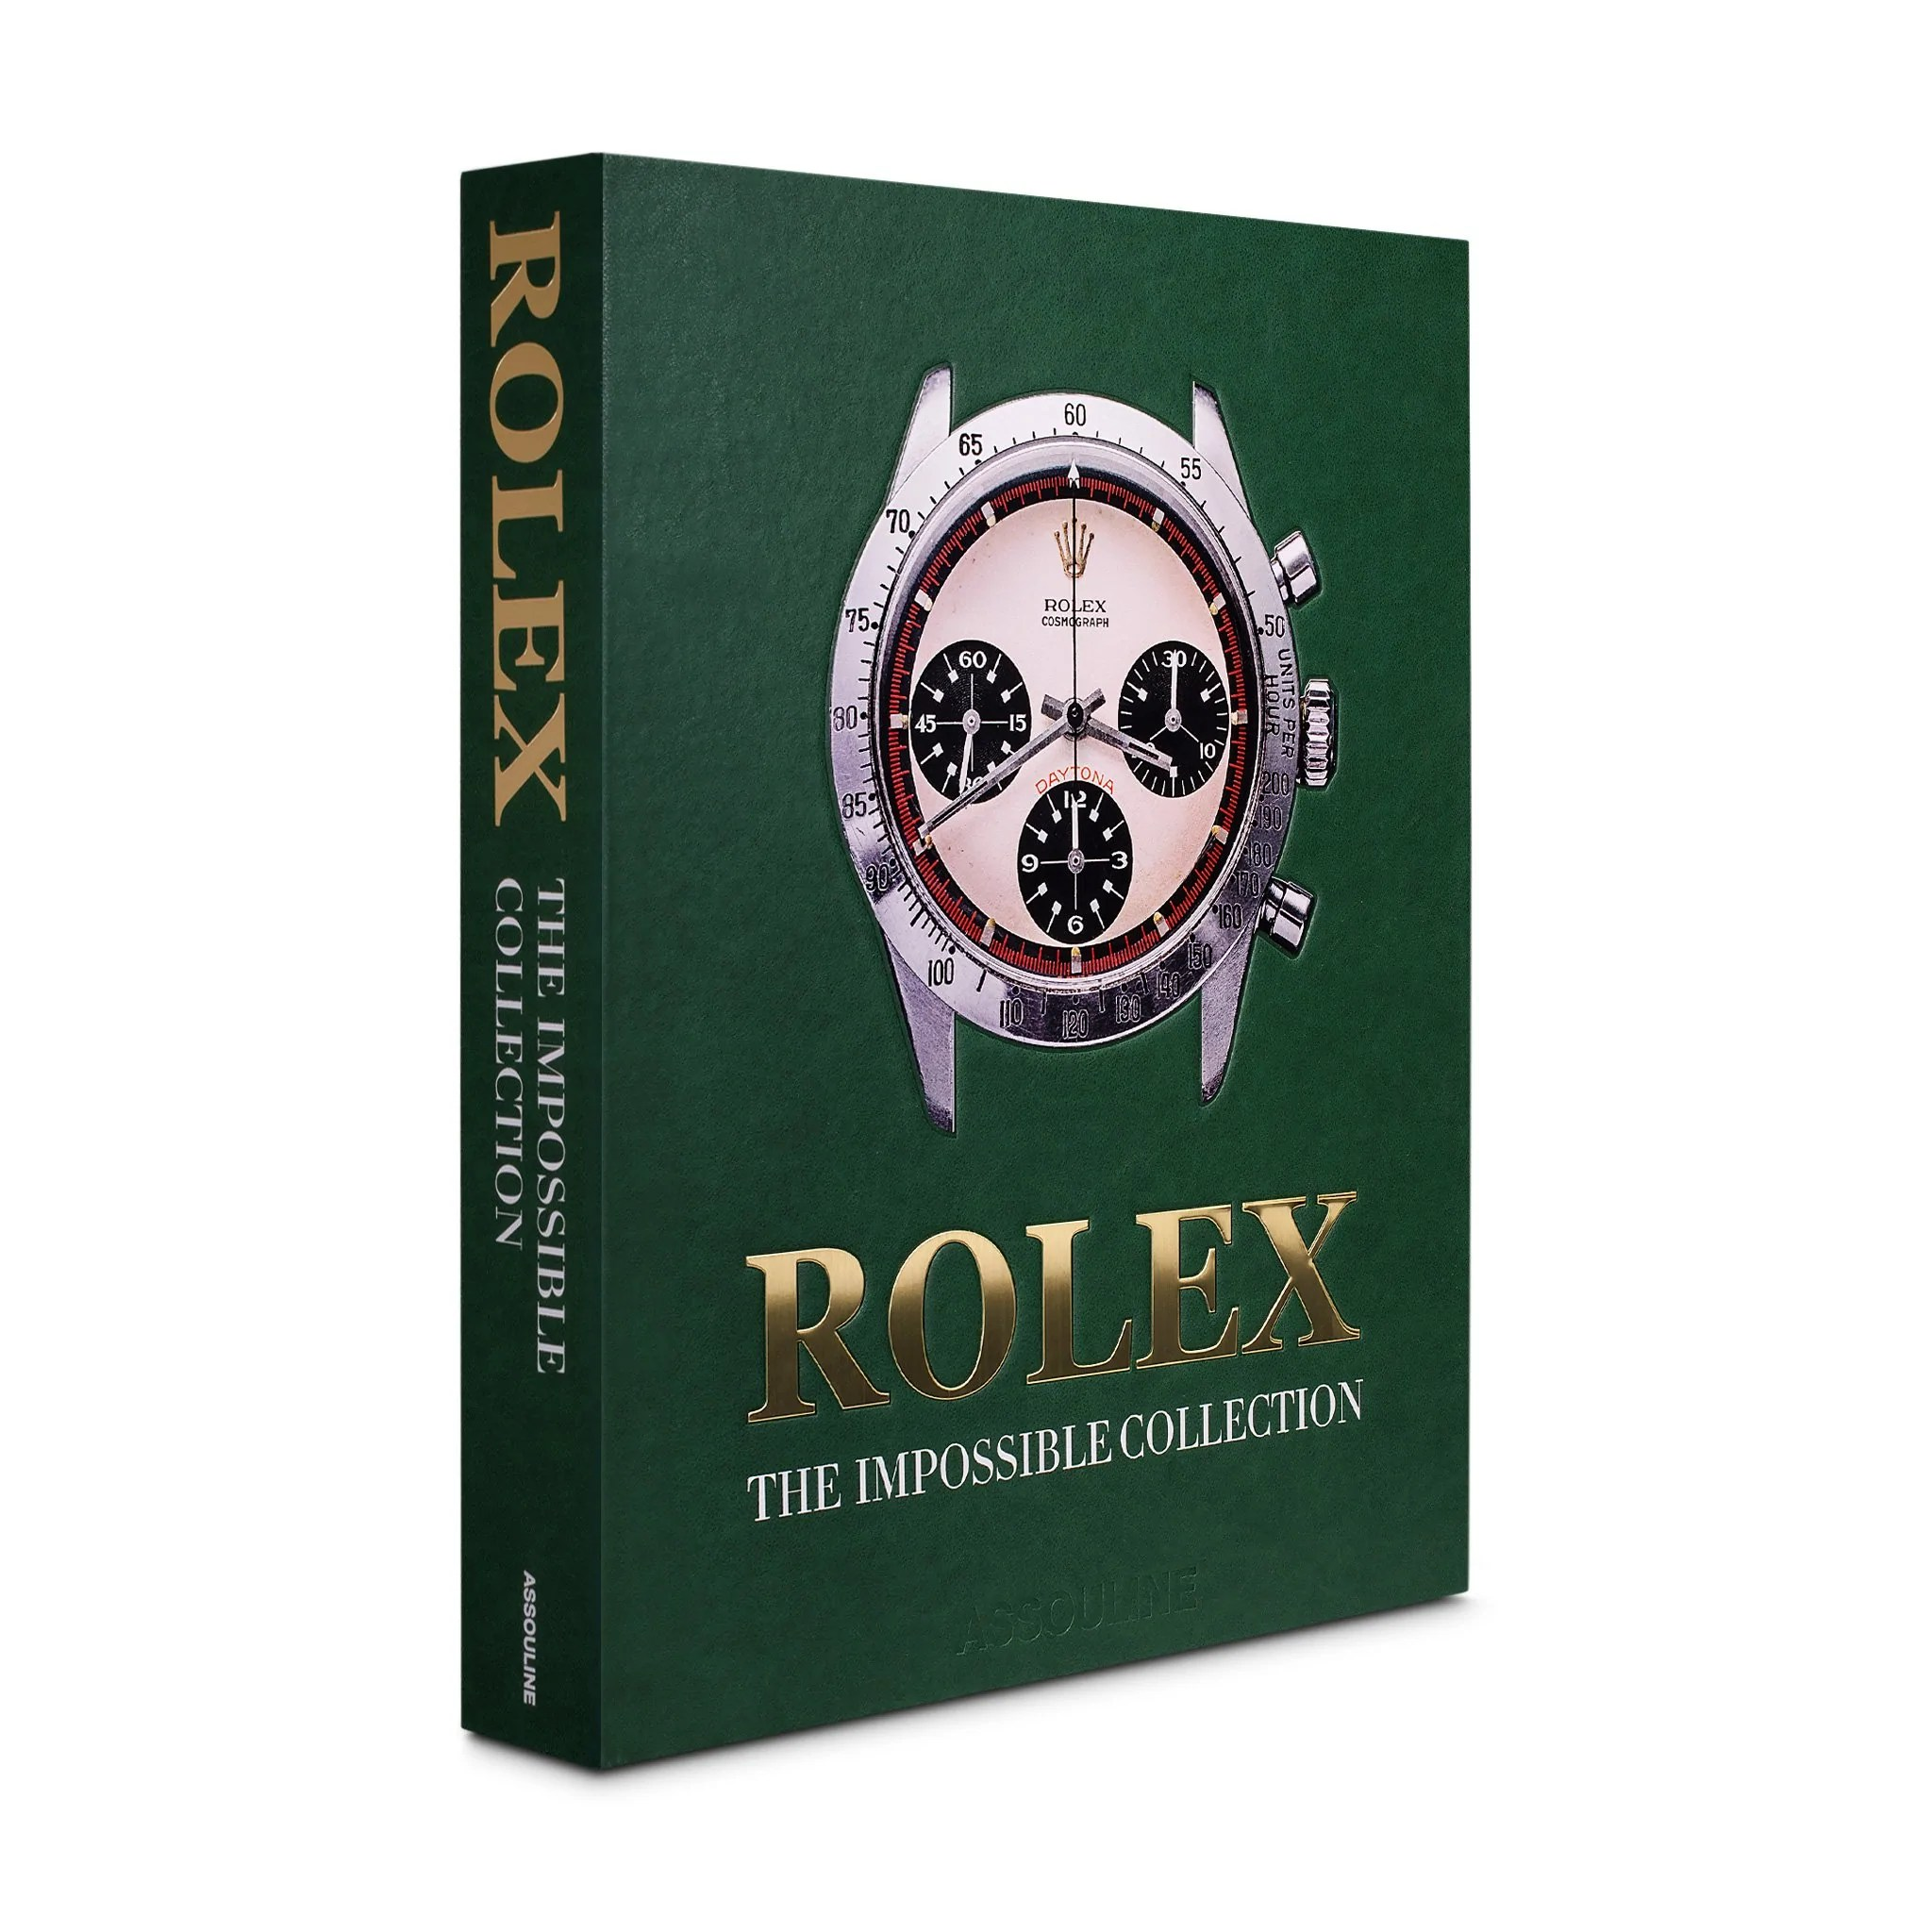 Waterproof Library Bags Australia Rolex The Impossible Collection Book By Fabienne Reybaud Assouline